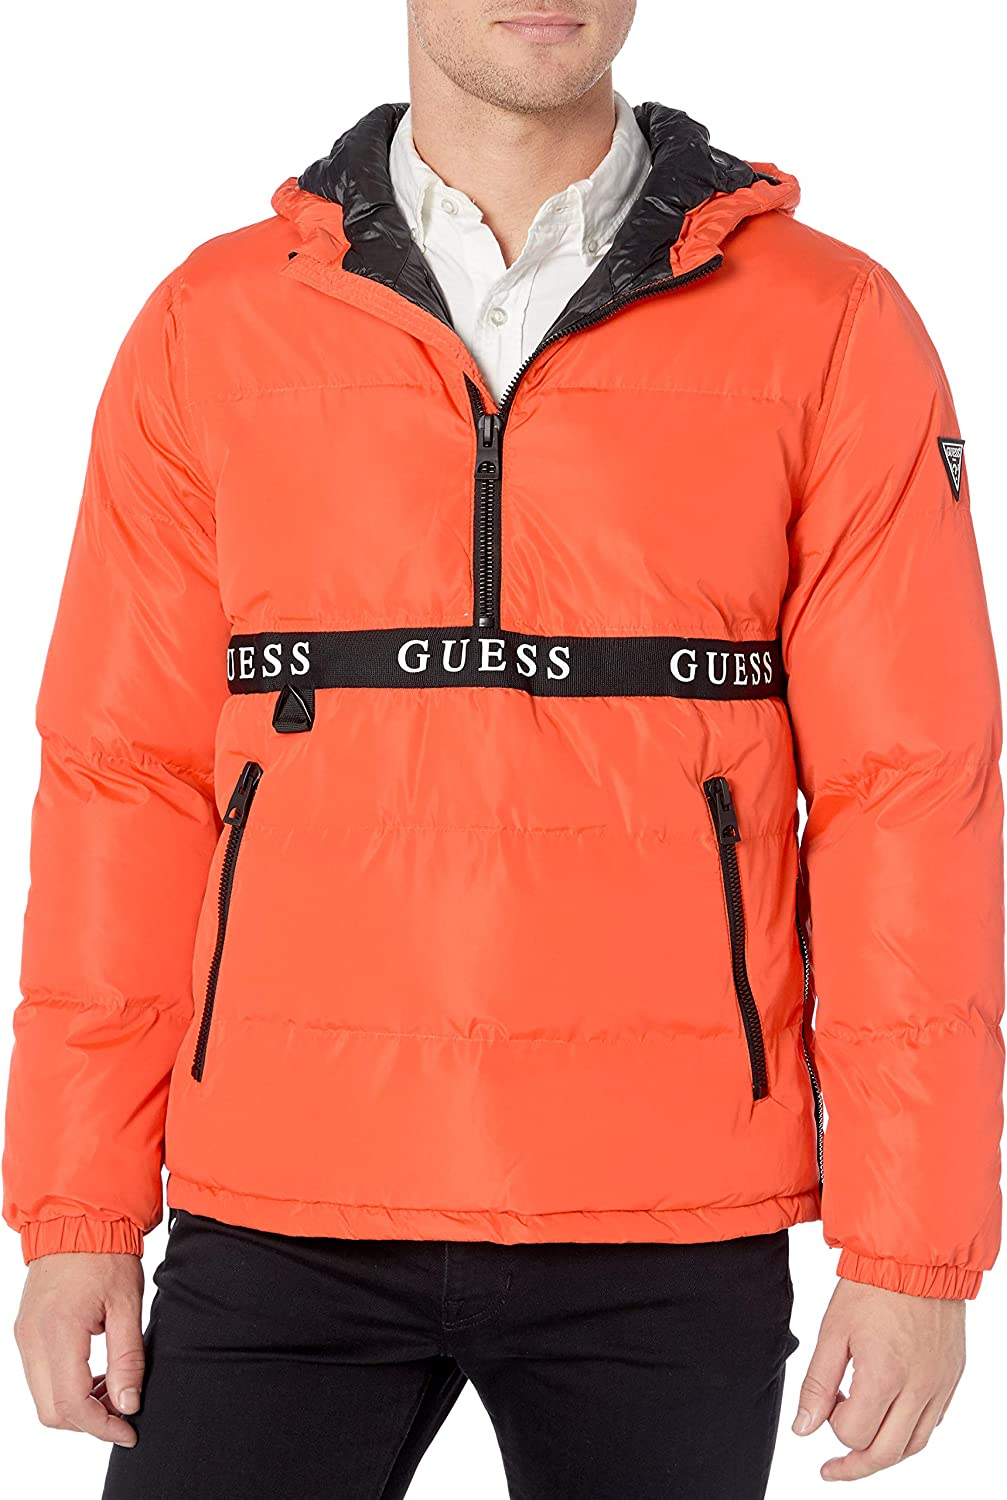 GUESS Mens Wind /& Water Resistant Hooded Pullover Puffer Jacket